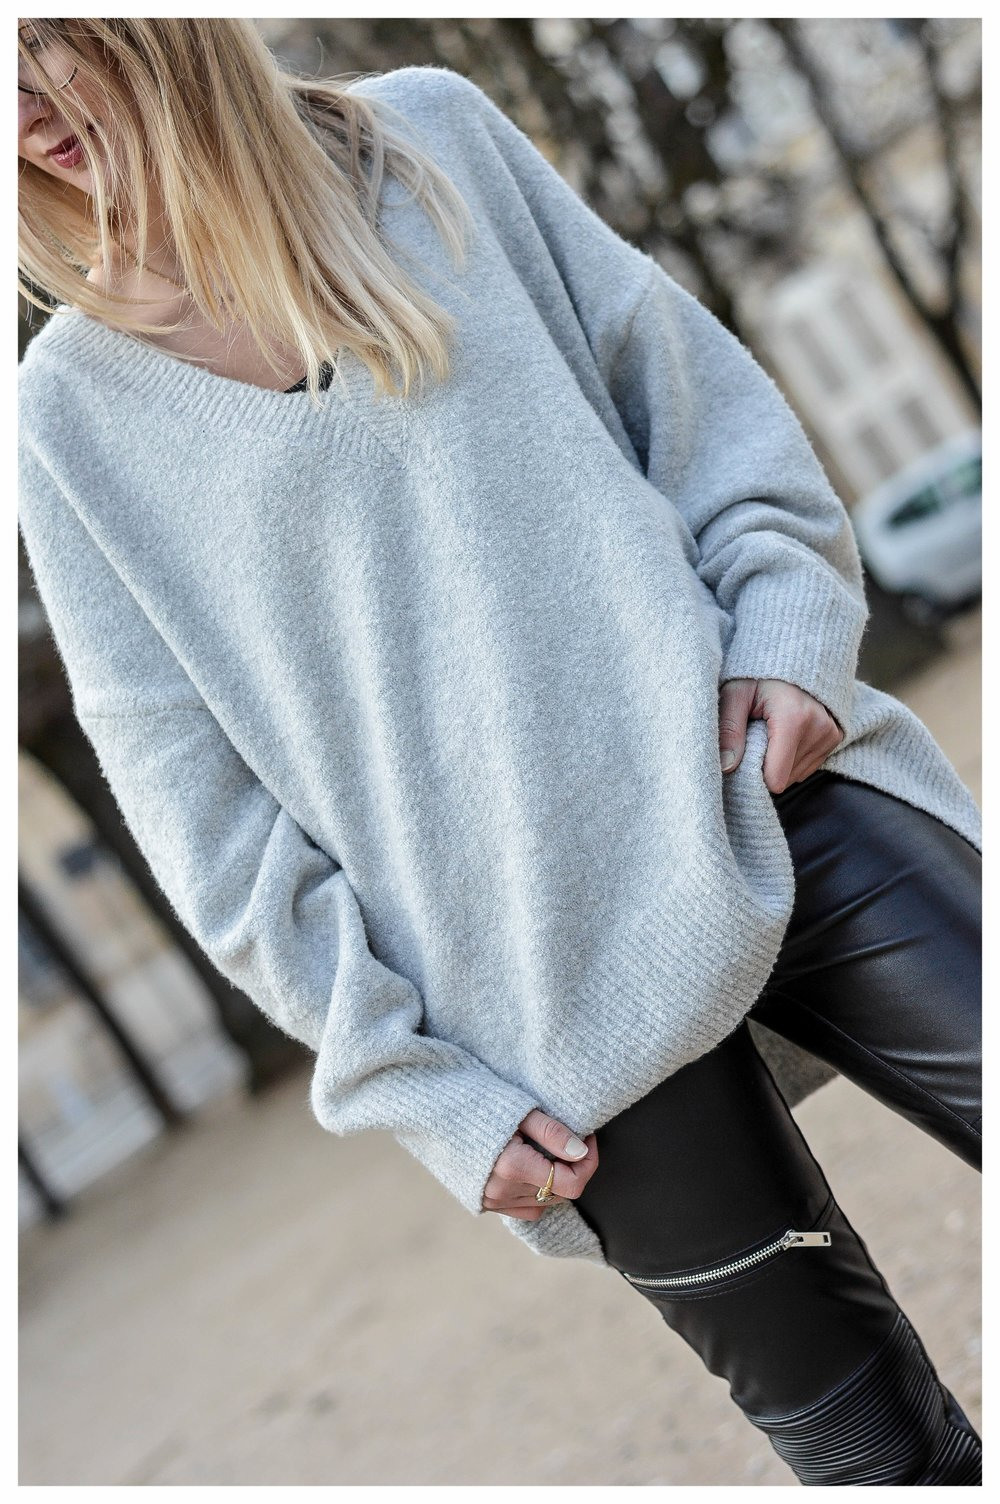 Grey Sweater Nancy - OSIARAH.COM (19 of 19).jpg